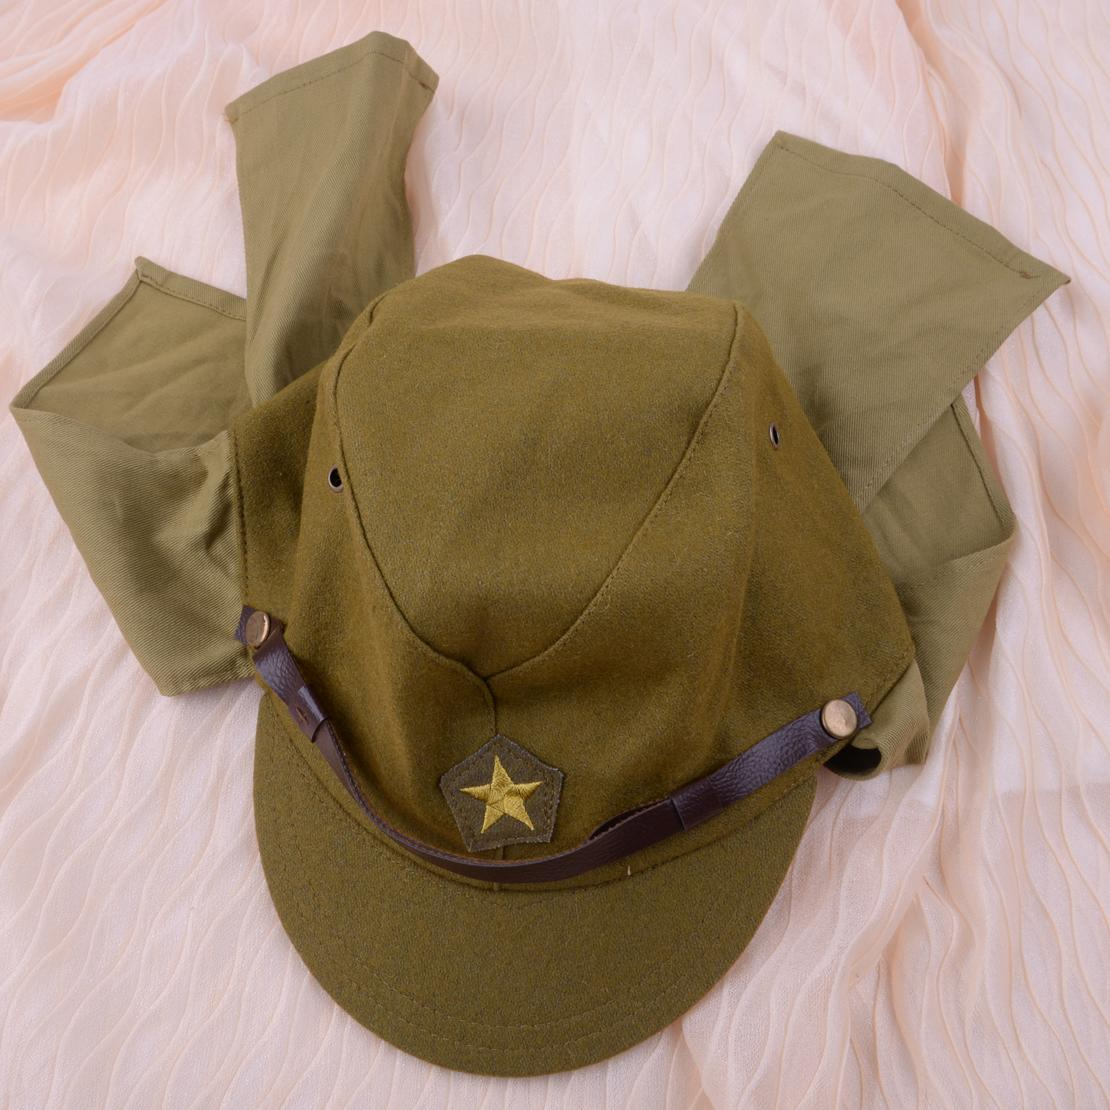 Hats Caps Military Hats Green Officer Field Wool World War II WW2 Japanese  Army Soldier Hat Cap Military Costume Accessory For Men